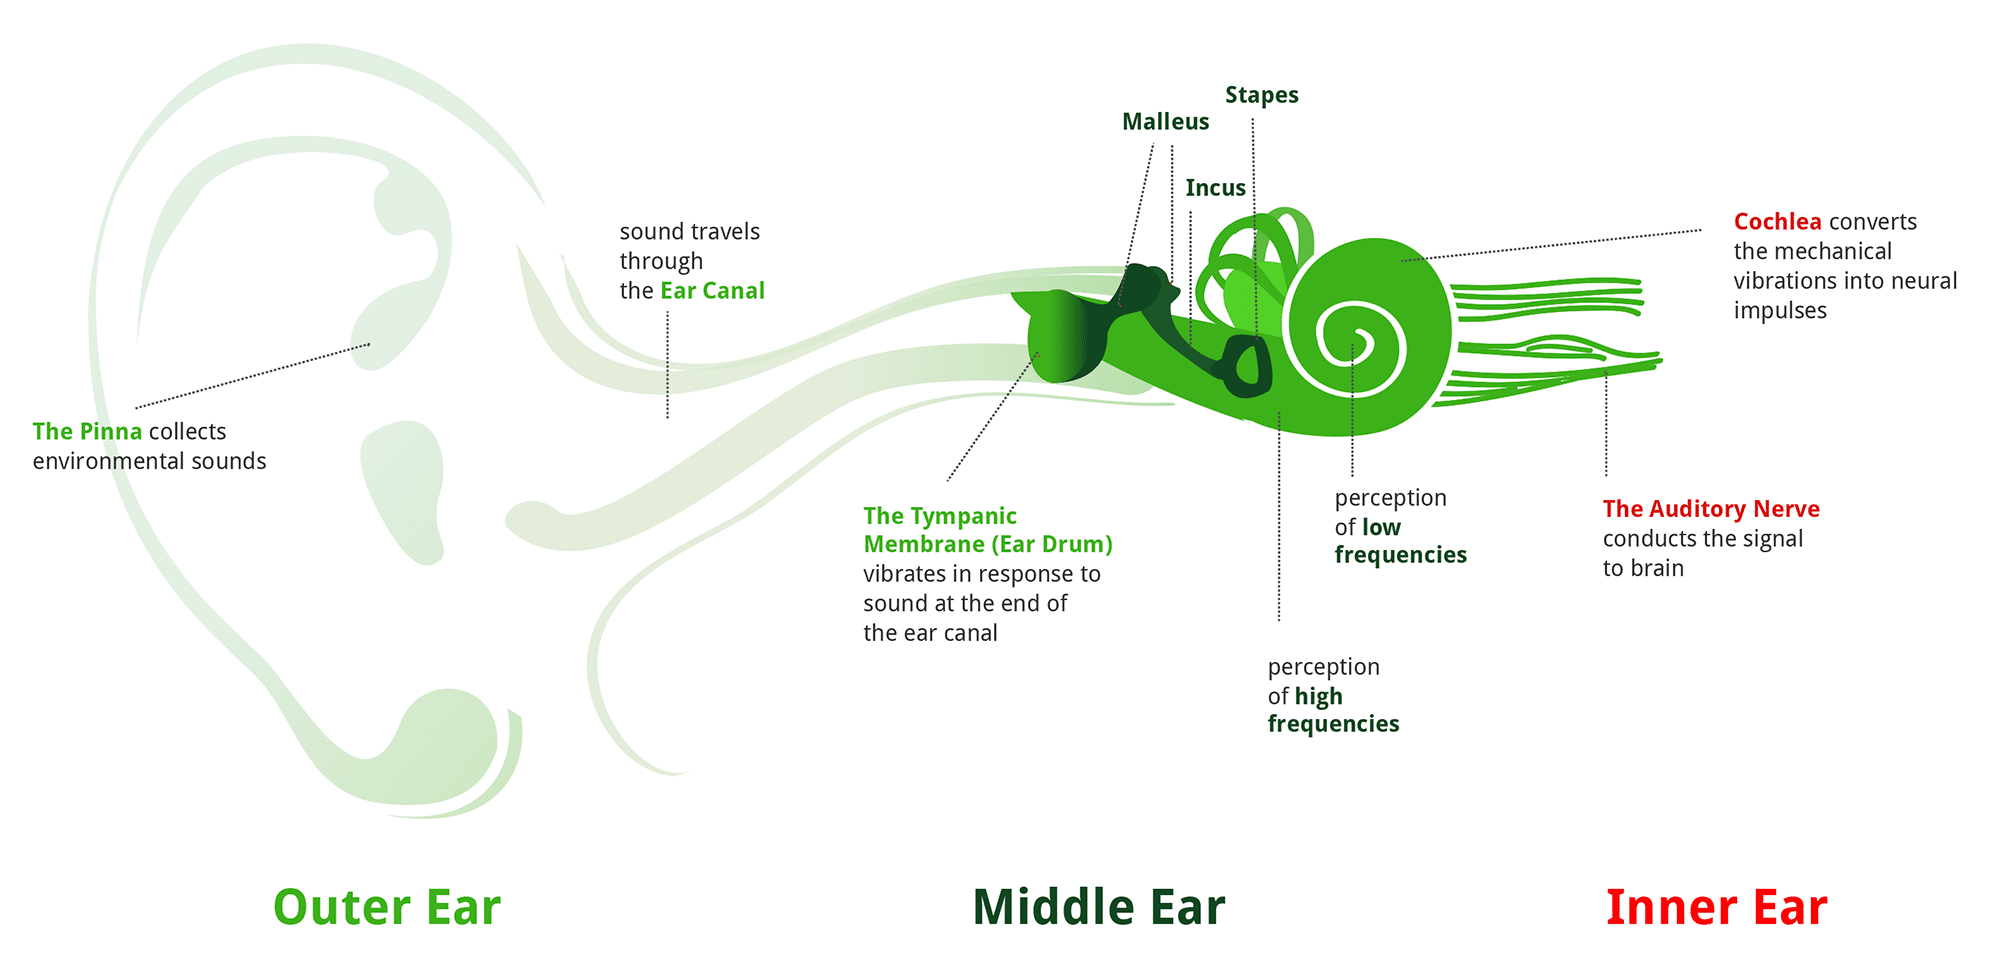 Journey through the ear